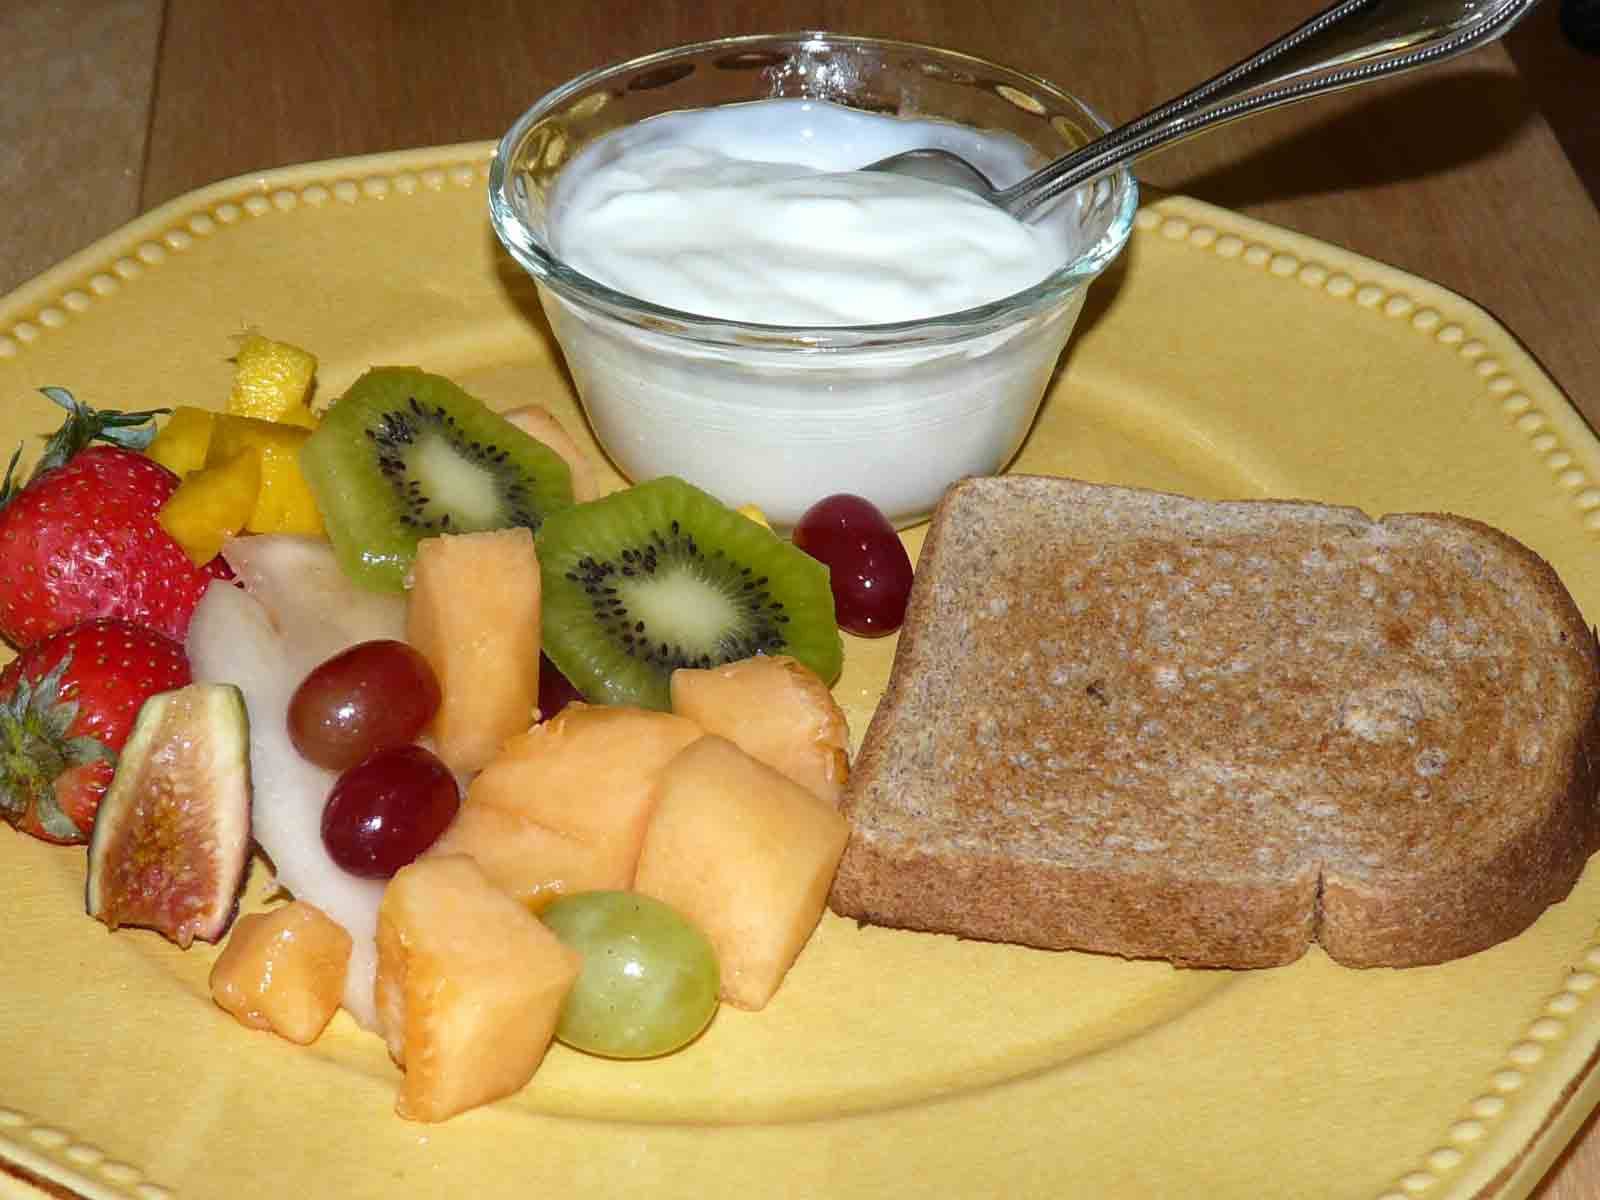 Healthy Breakfast Pictures  Food and Health munications